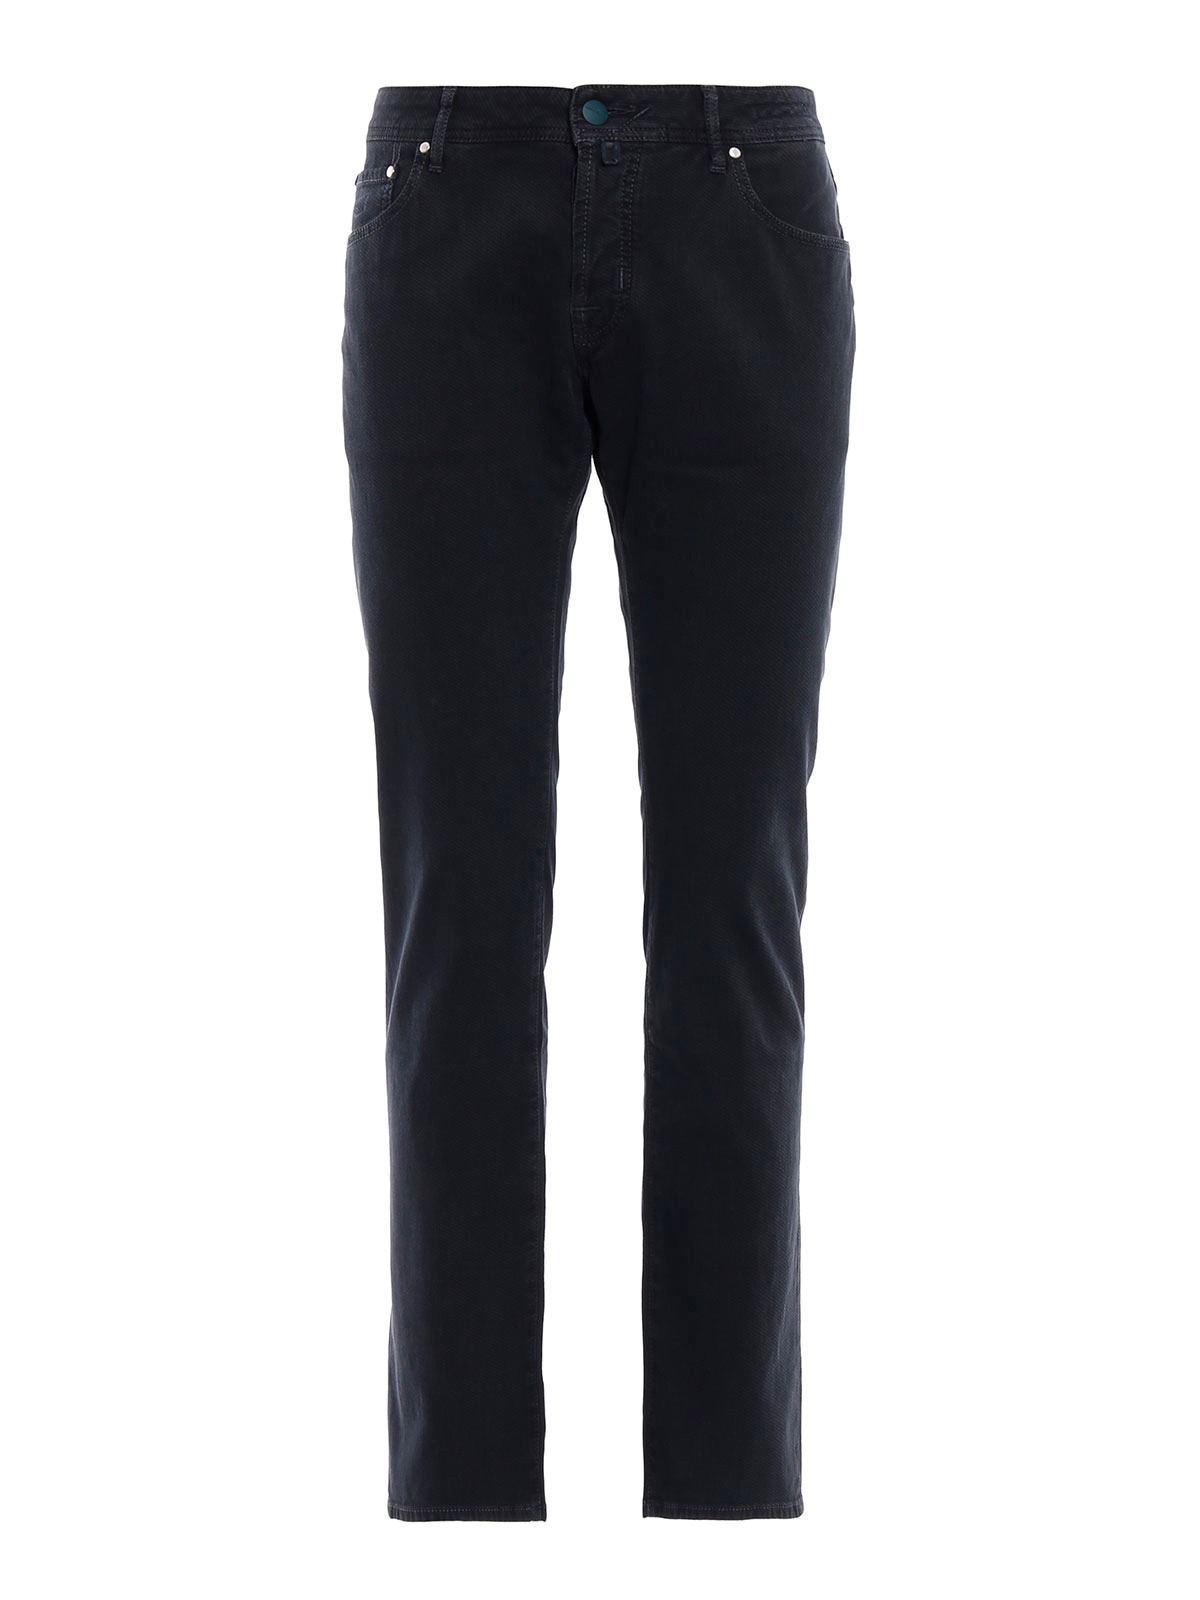 Picture of JACOB COHEN | Men's Style 622 Trousers